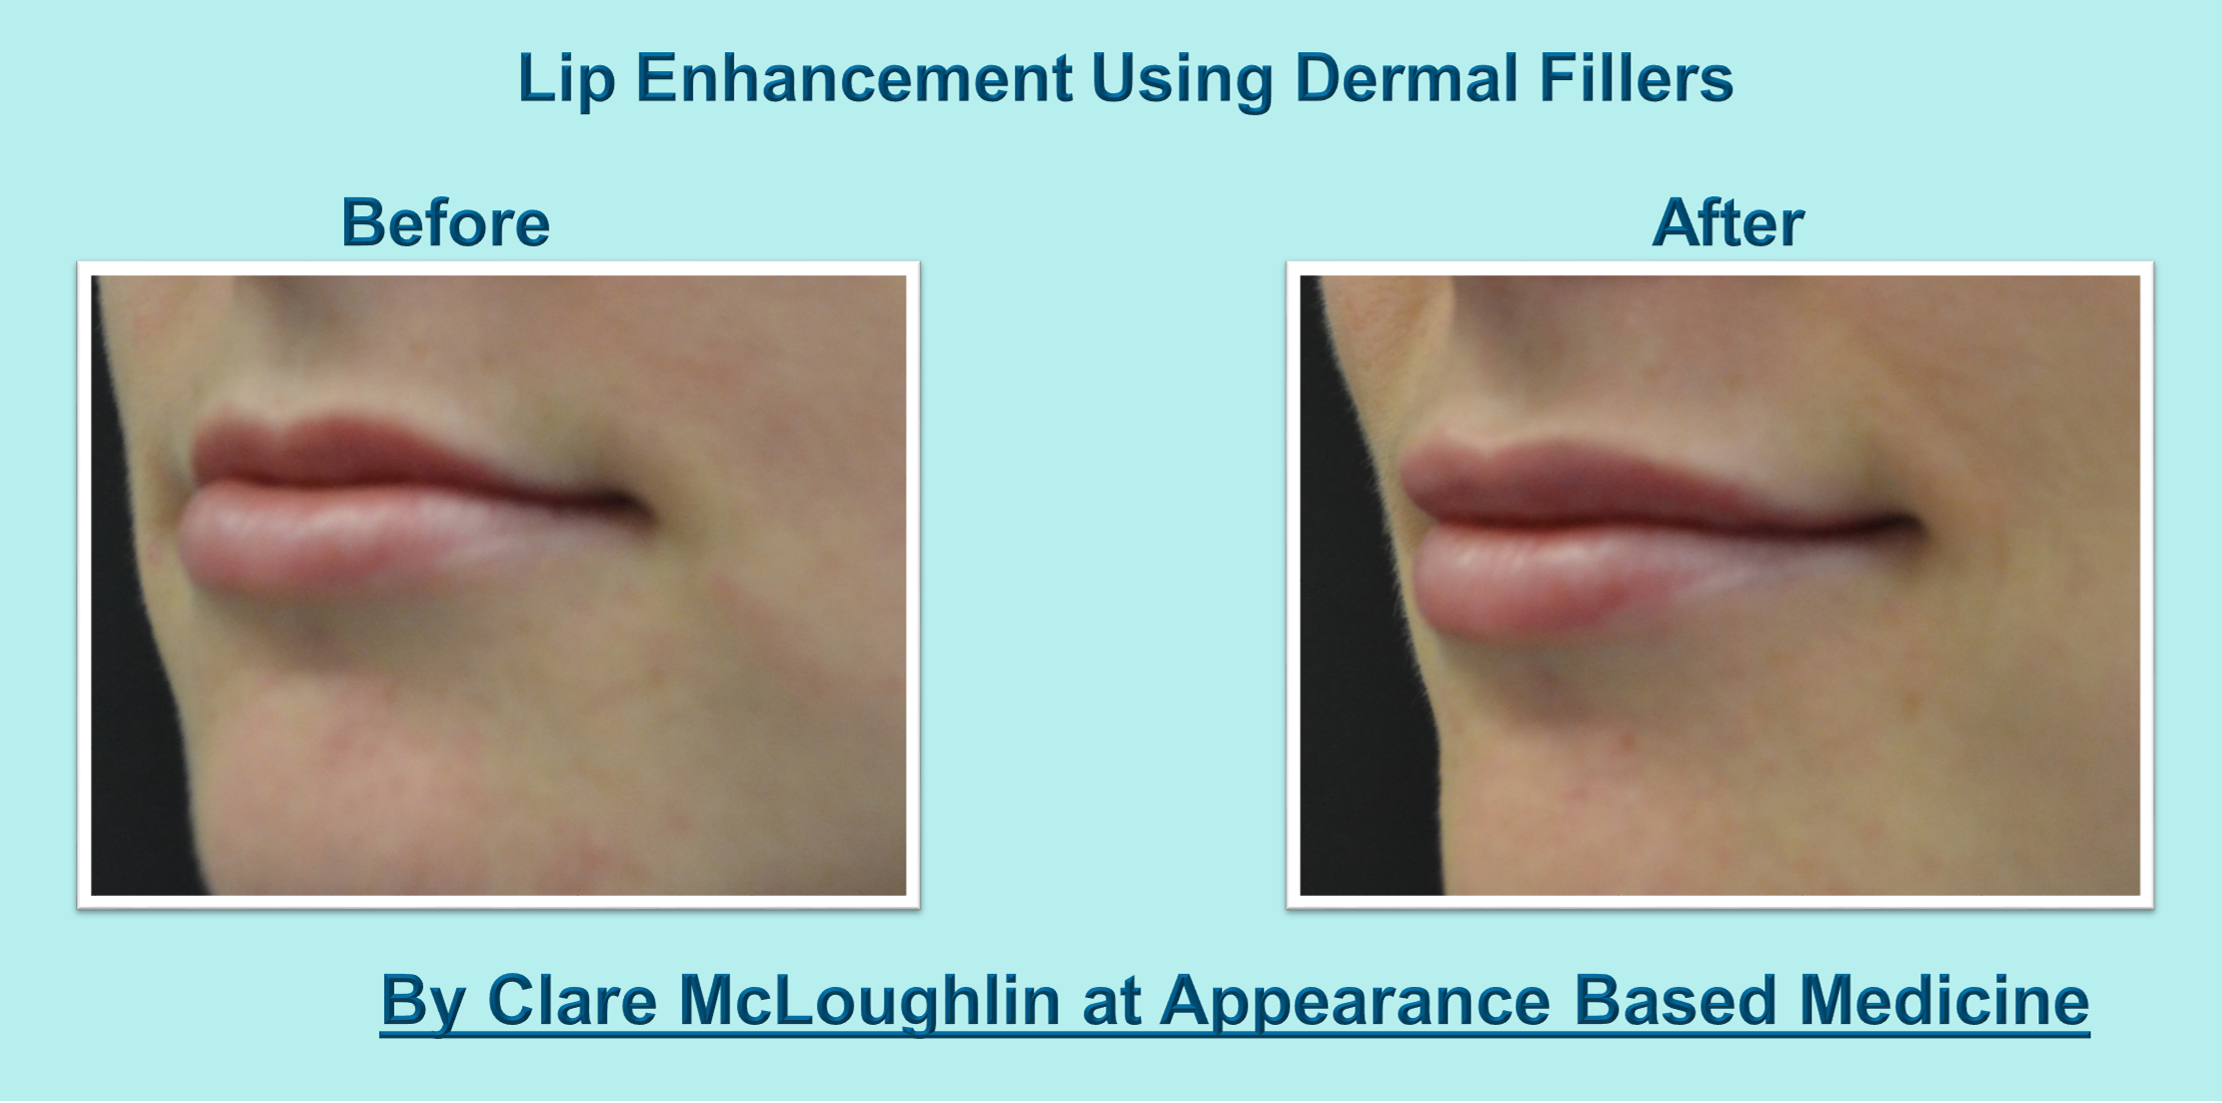 Lip Fillers Treatment Information and Before & After Images